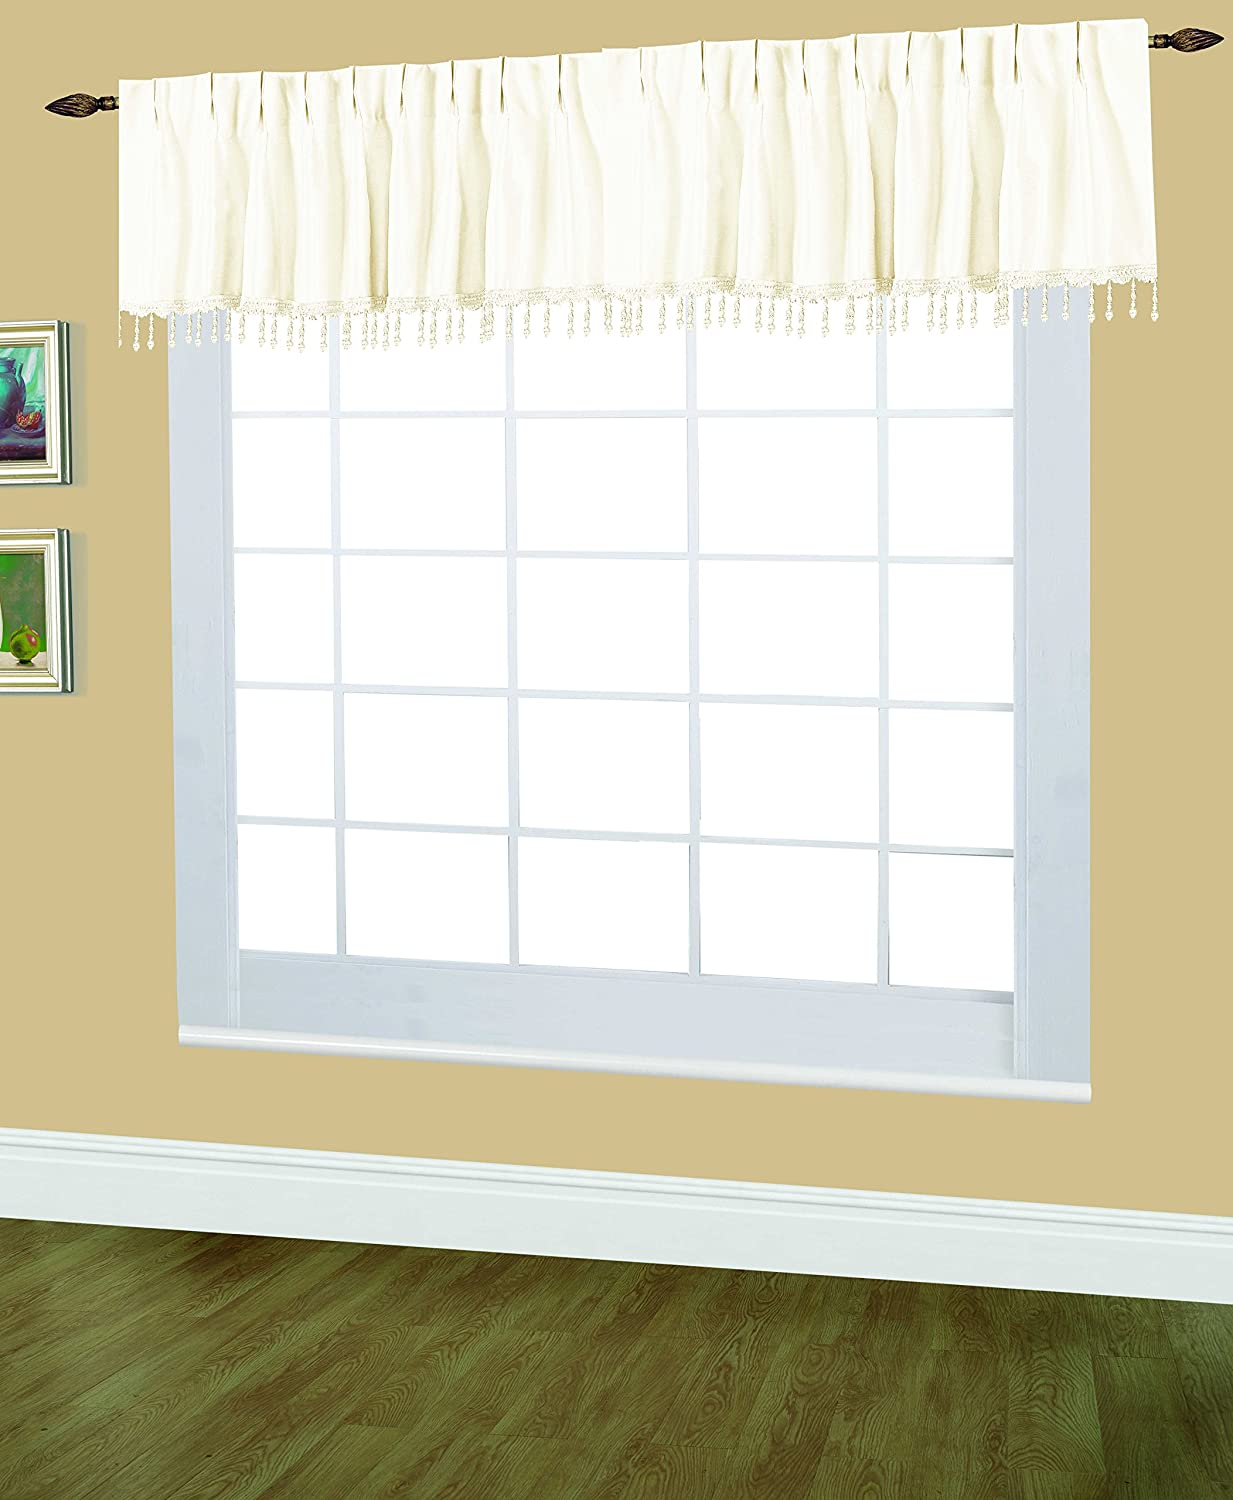 Editex Home Textiles Elaine Lined Pinch Pleated Window Curtain Red 96 by 95-Inch